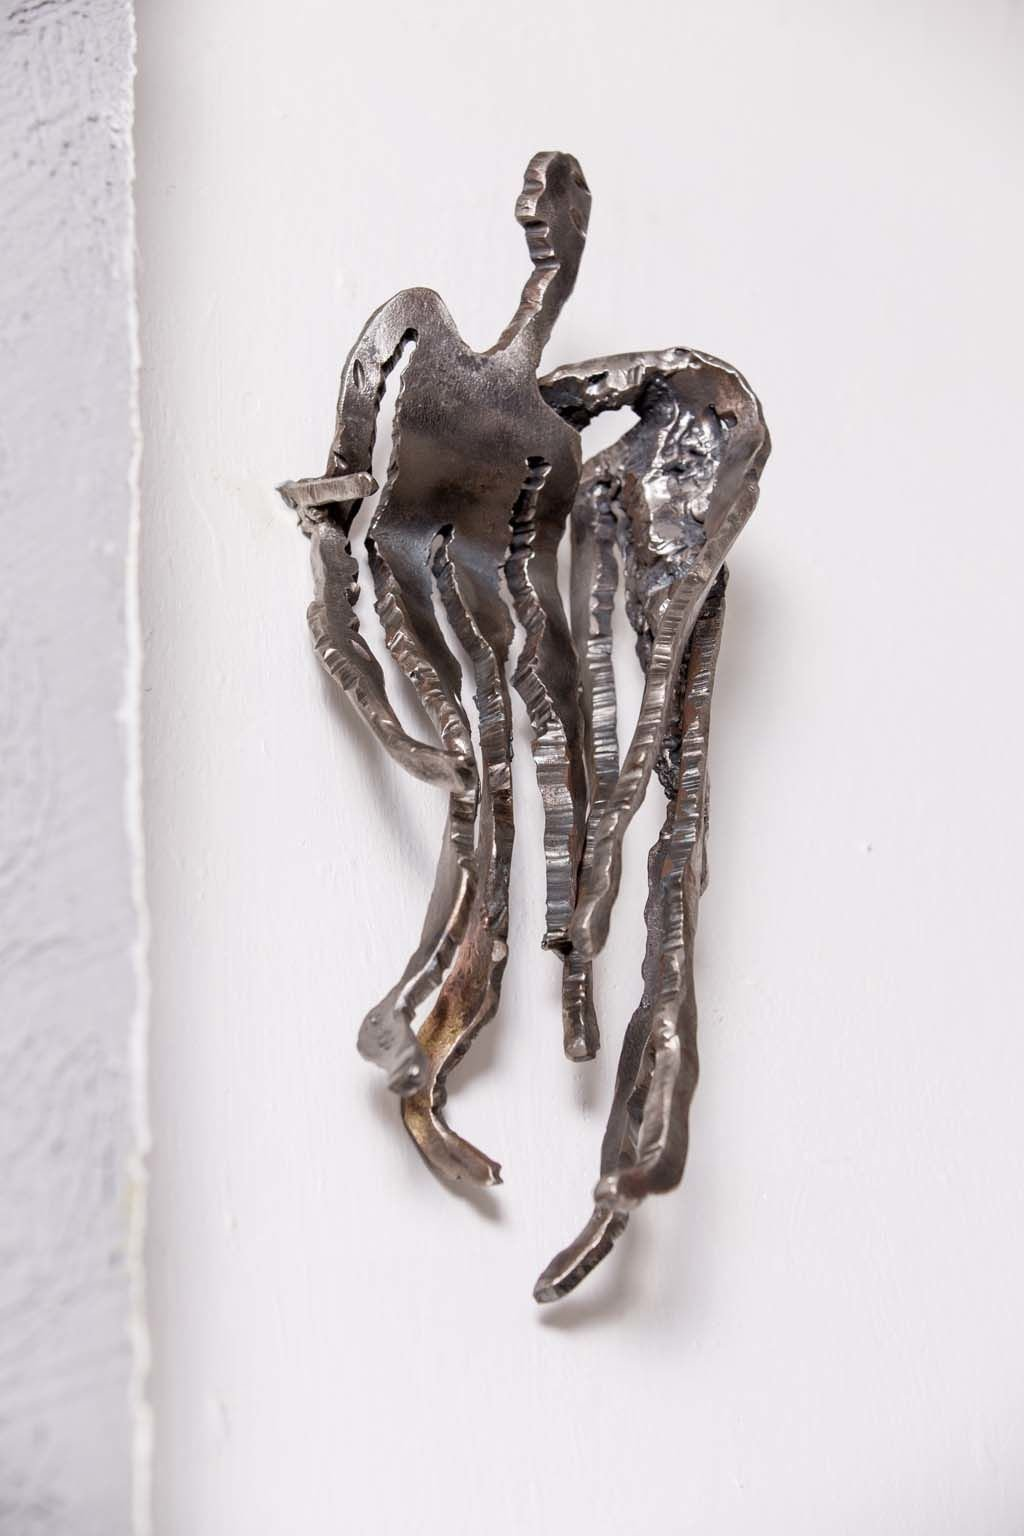 Rami Ater | ' Compassion I ' | Iron Sculpture| Exhibition | Artist wall